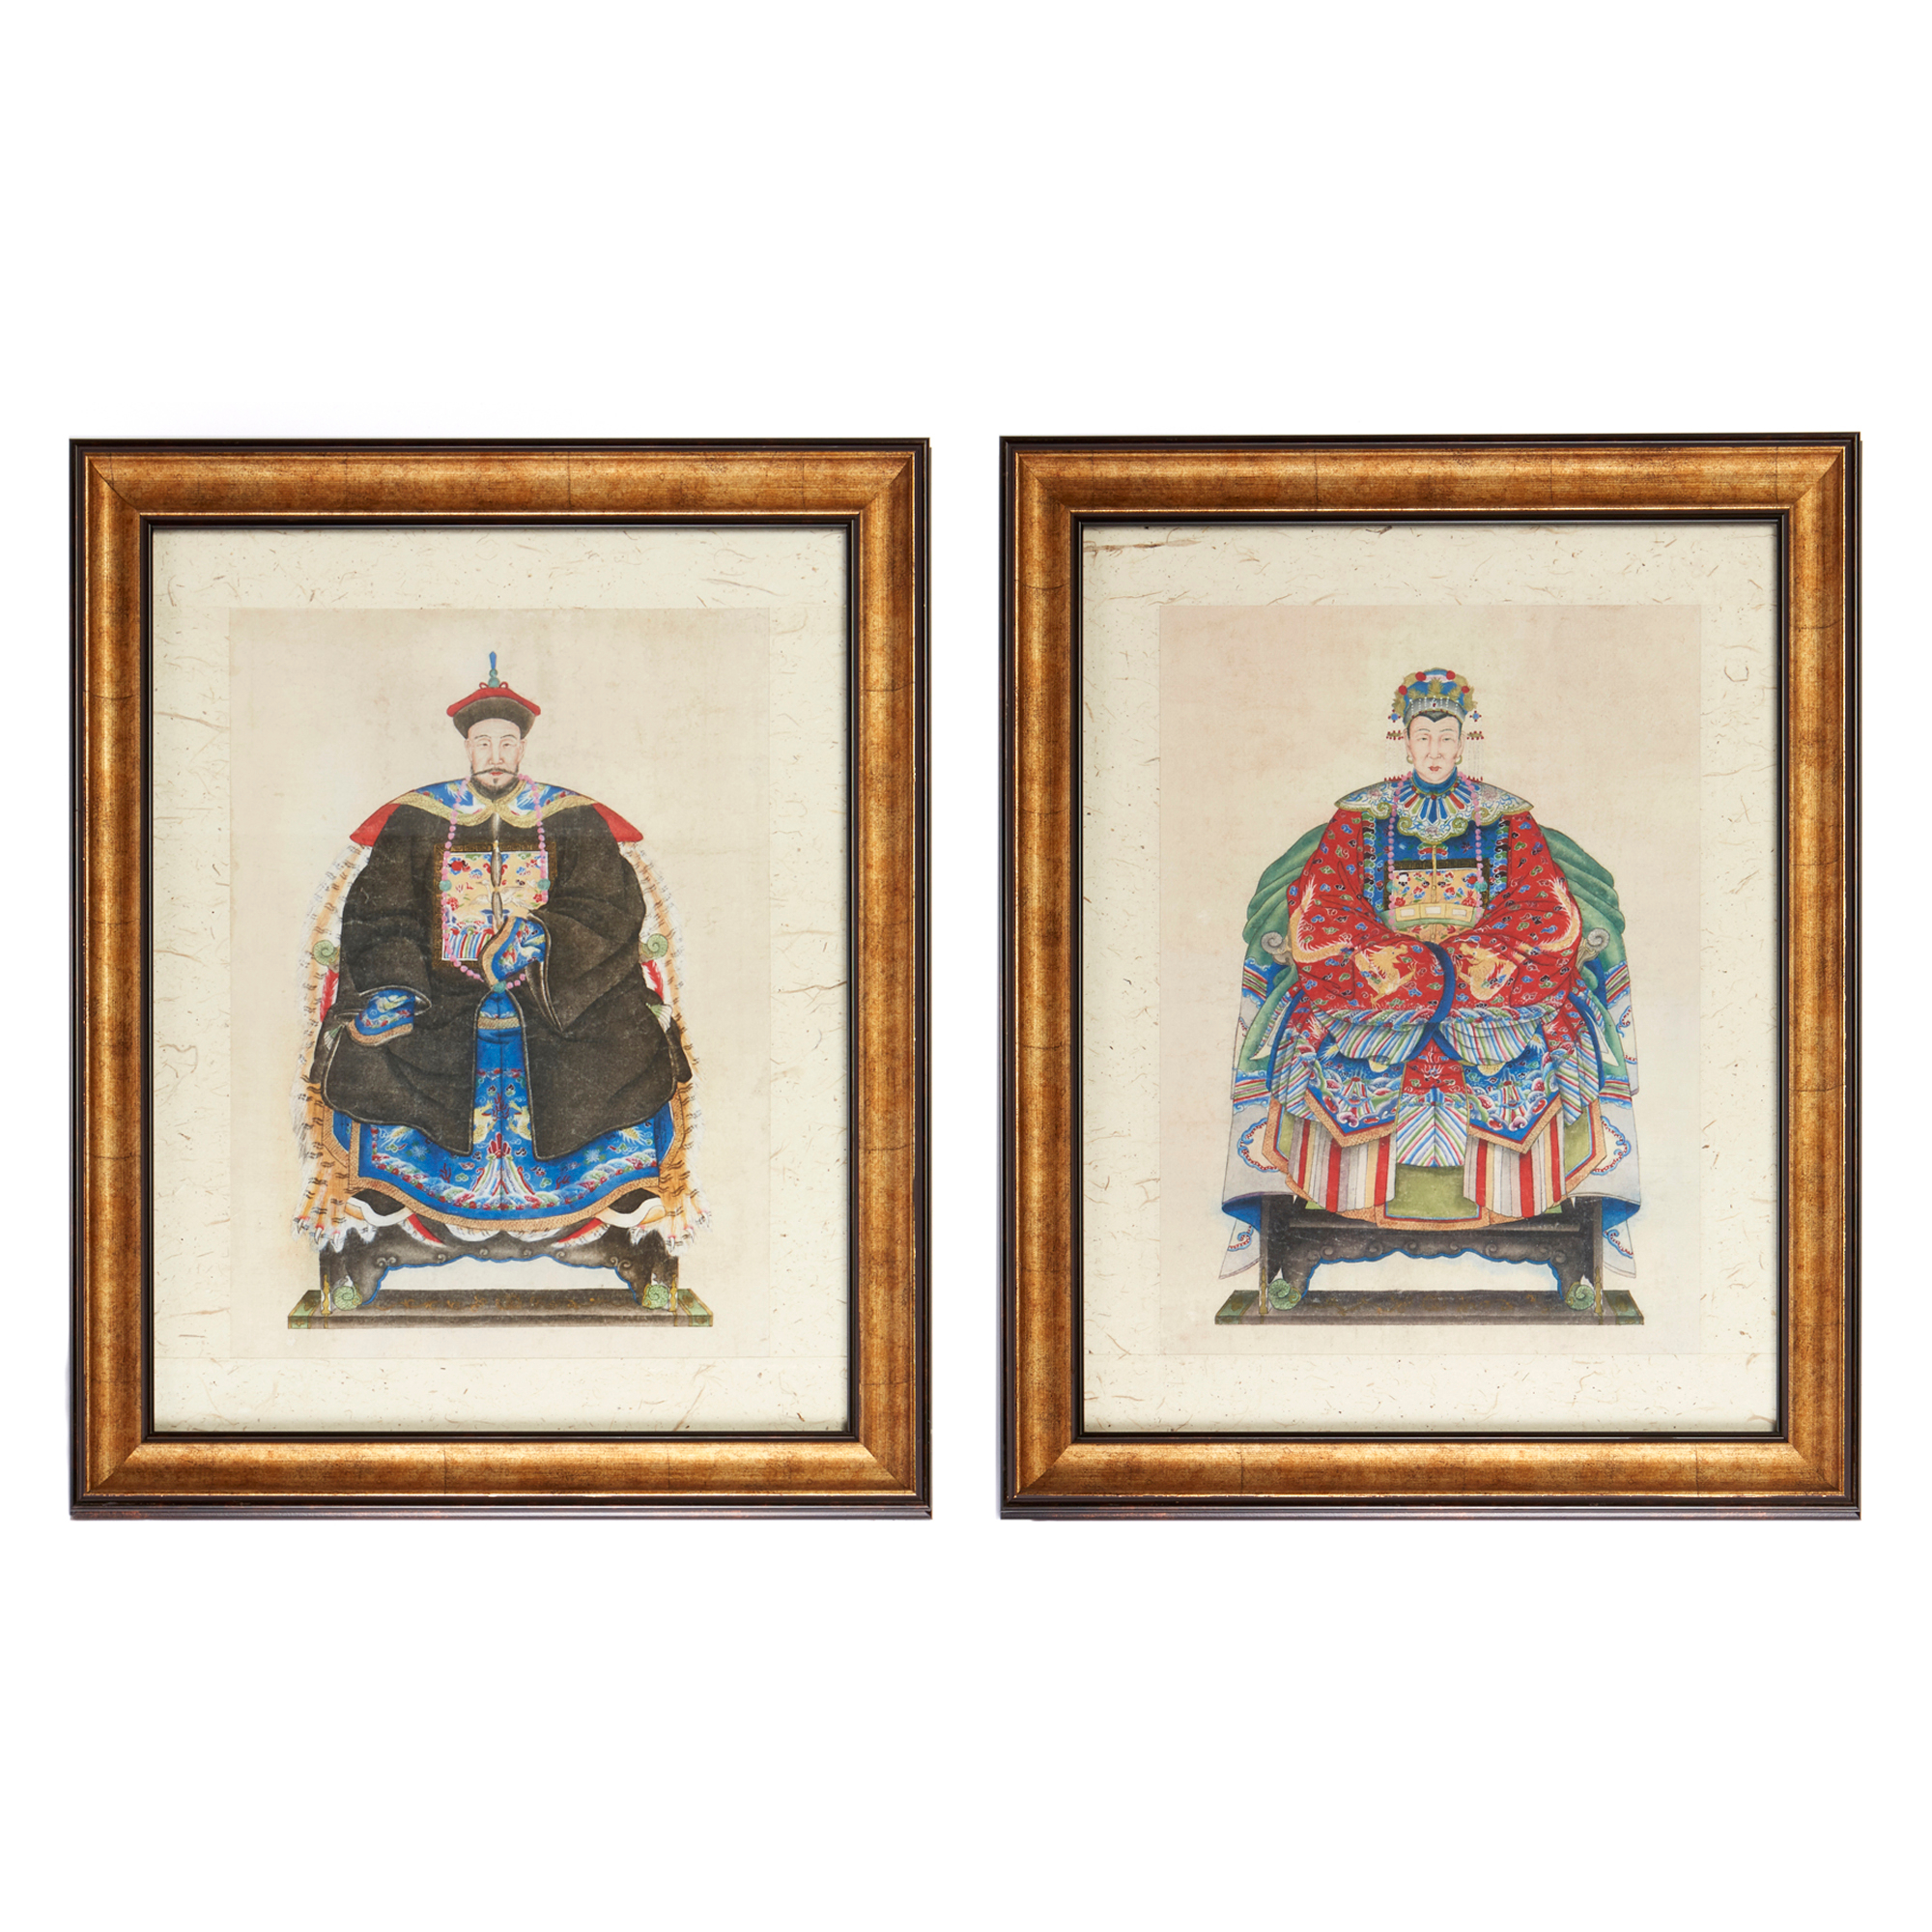 Qing Dynasty Courtier Prints